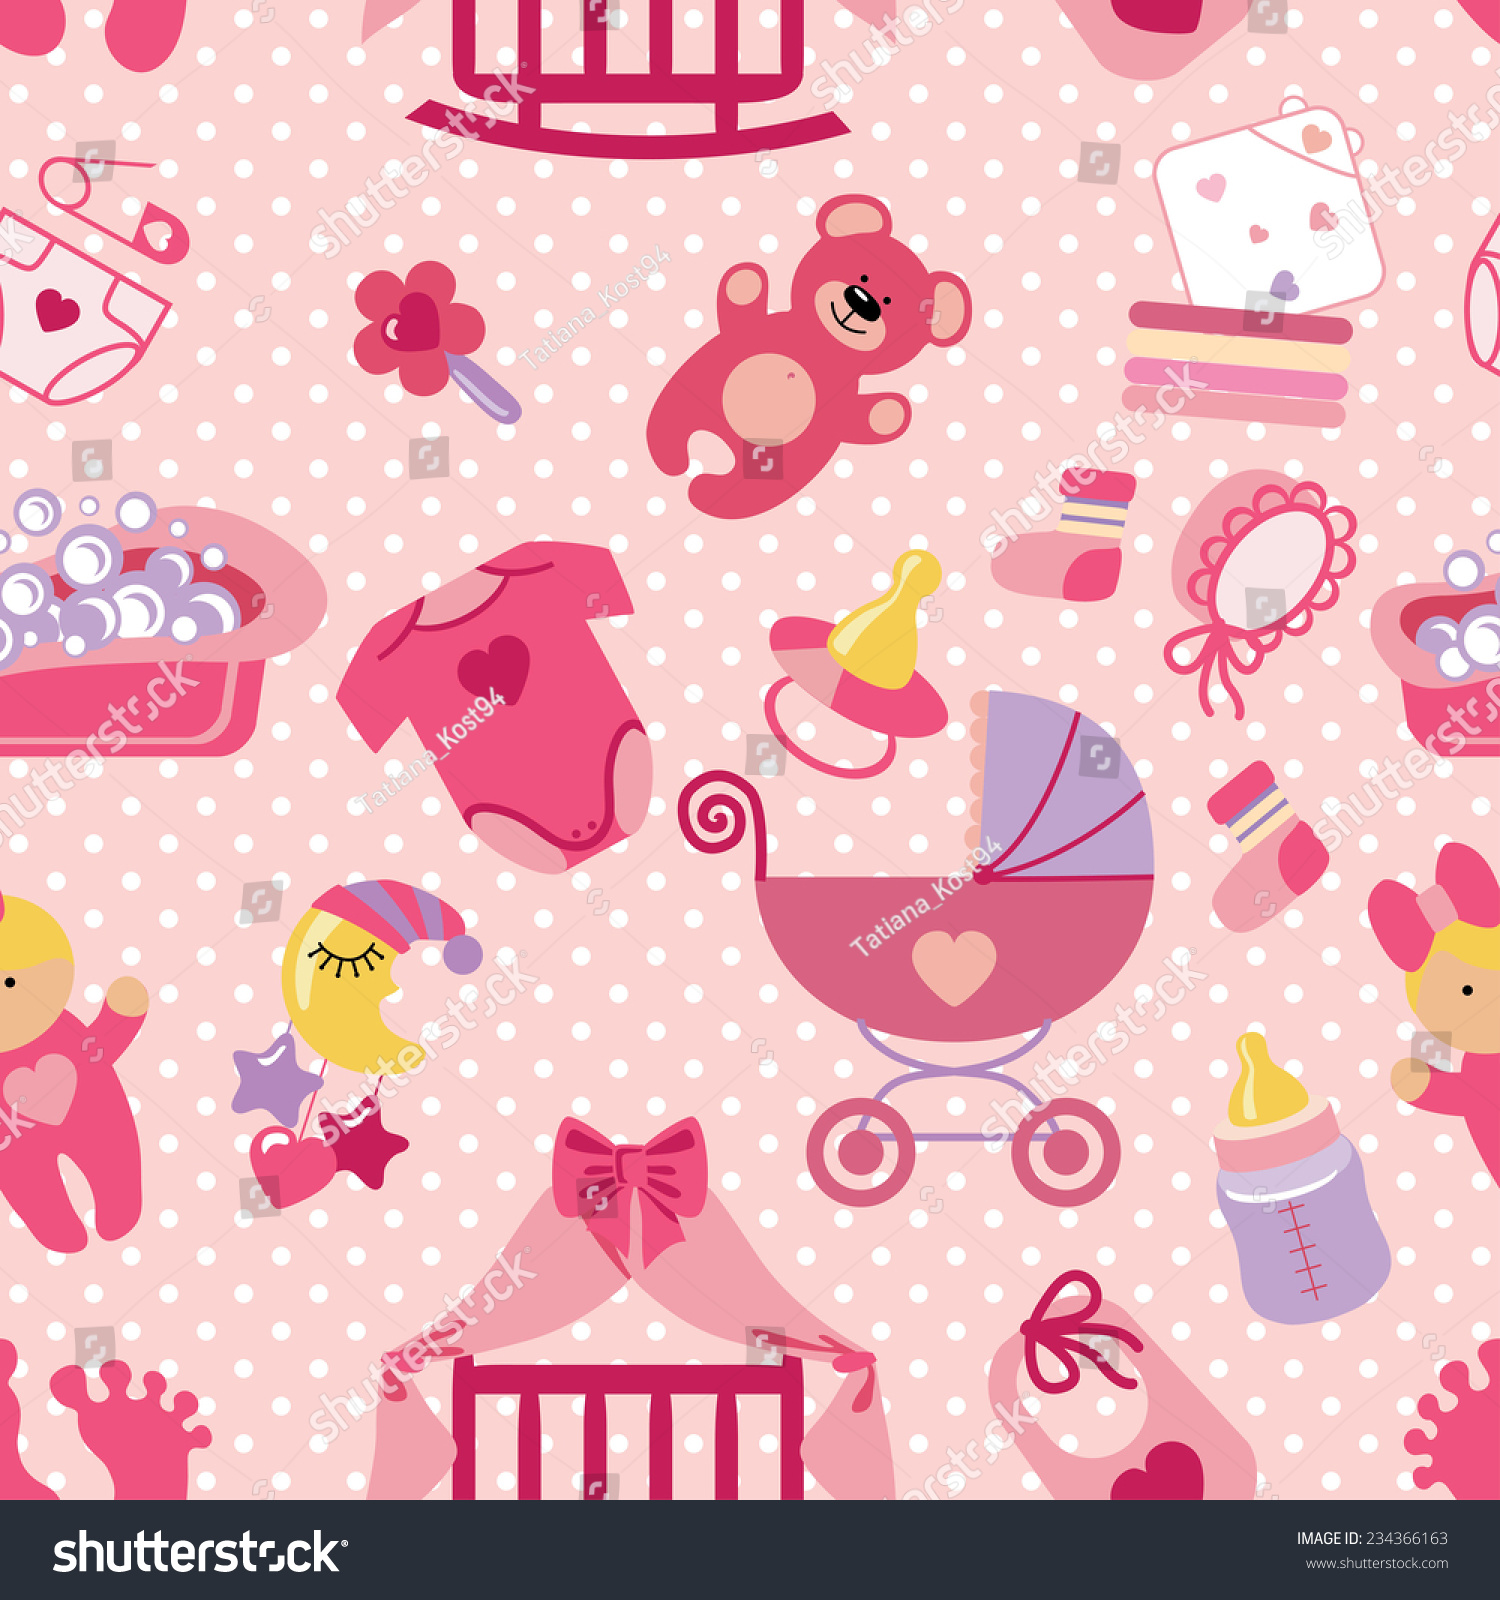 Baby Wallpaper Design : Baby wallpaper design pink pixshark images